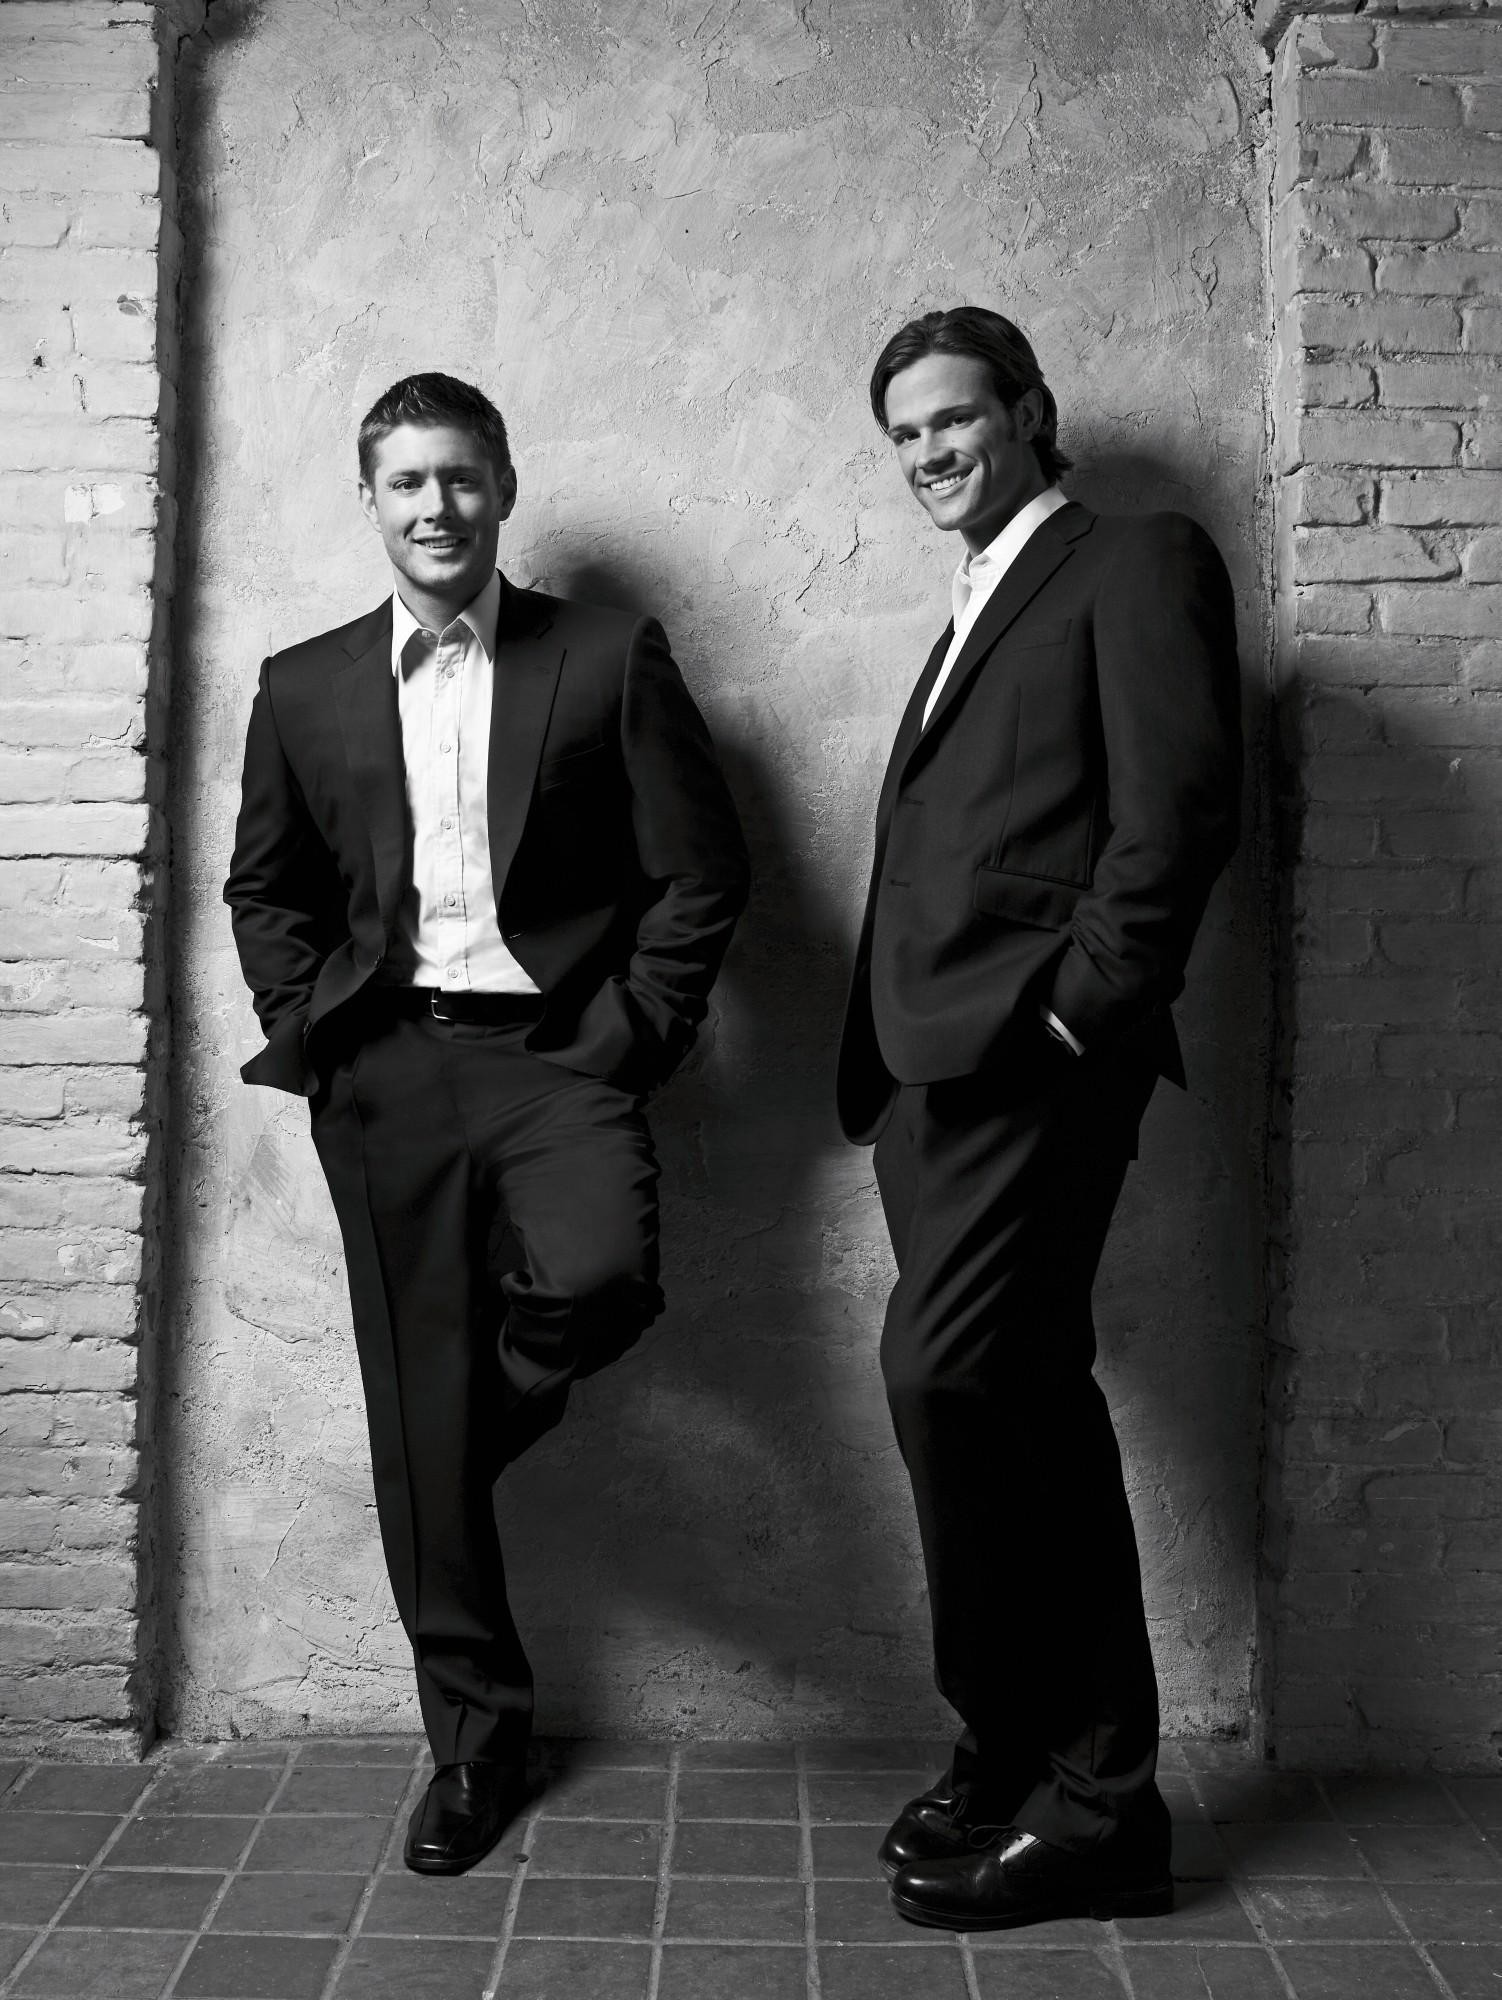 Jensen Ackles & Jared Padalecki. Best friends in real life. Also they seem  like